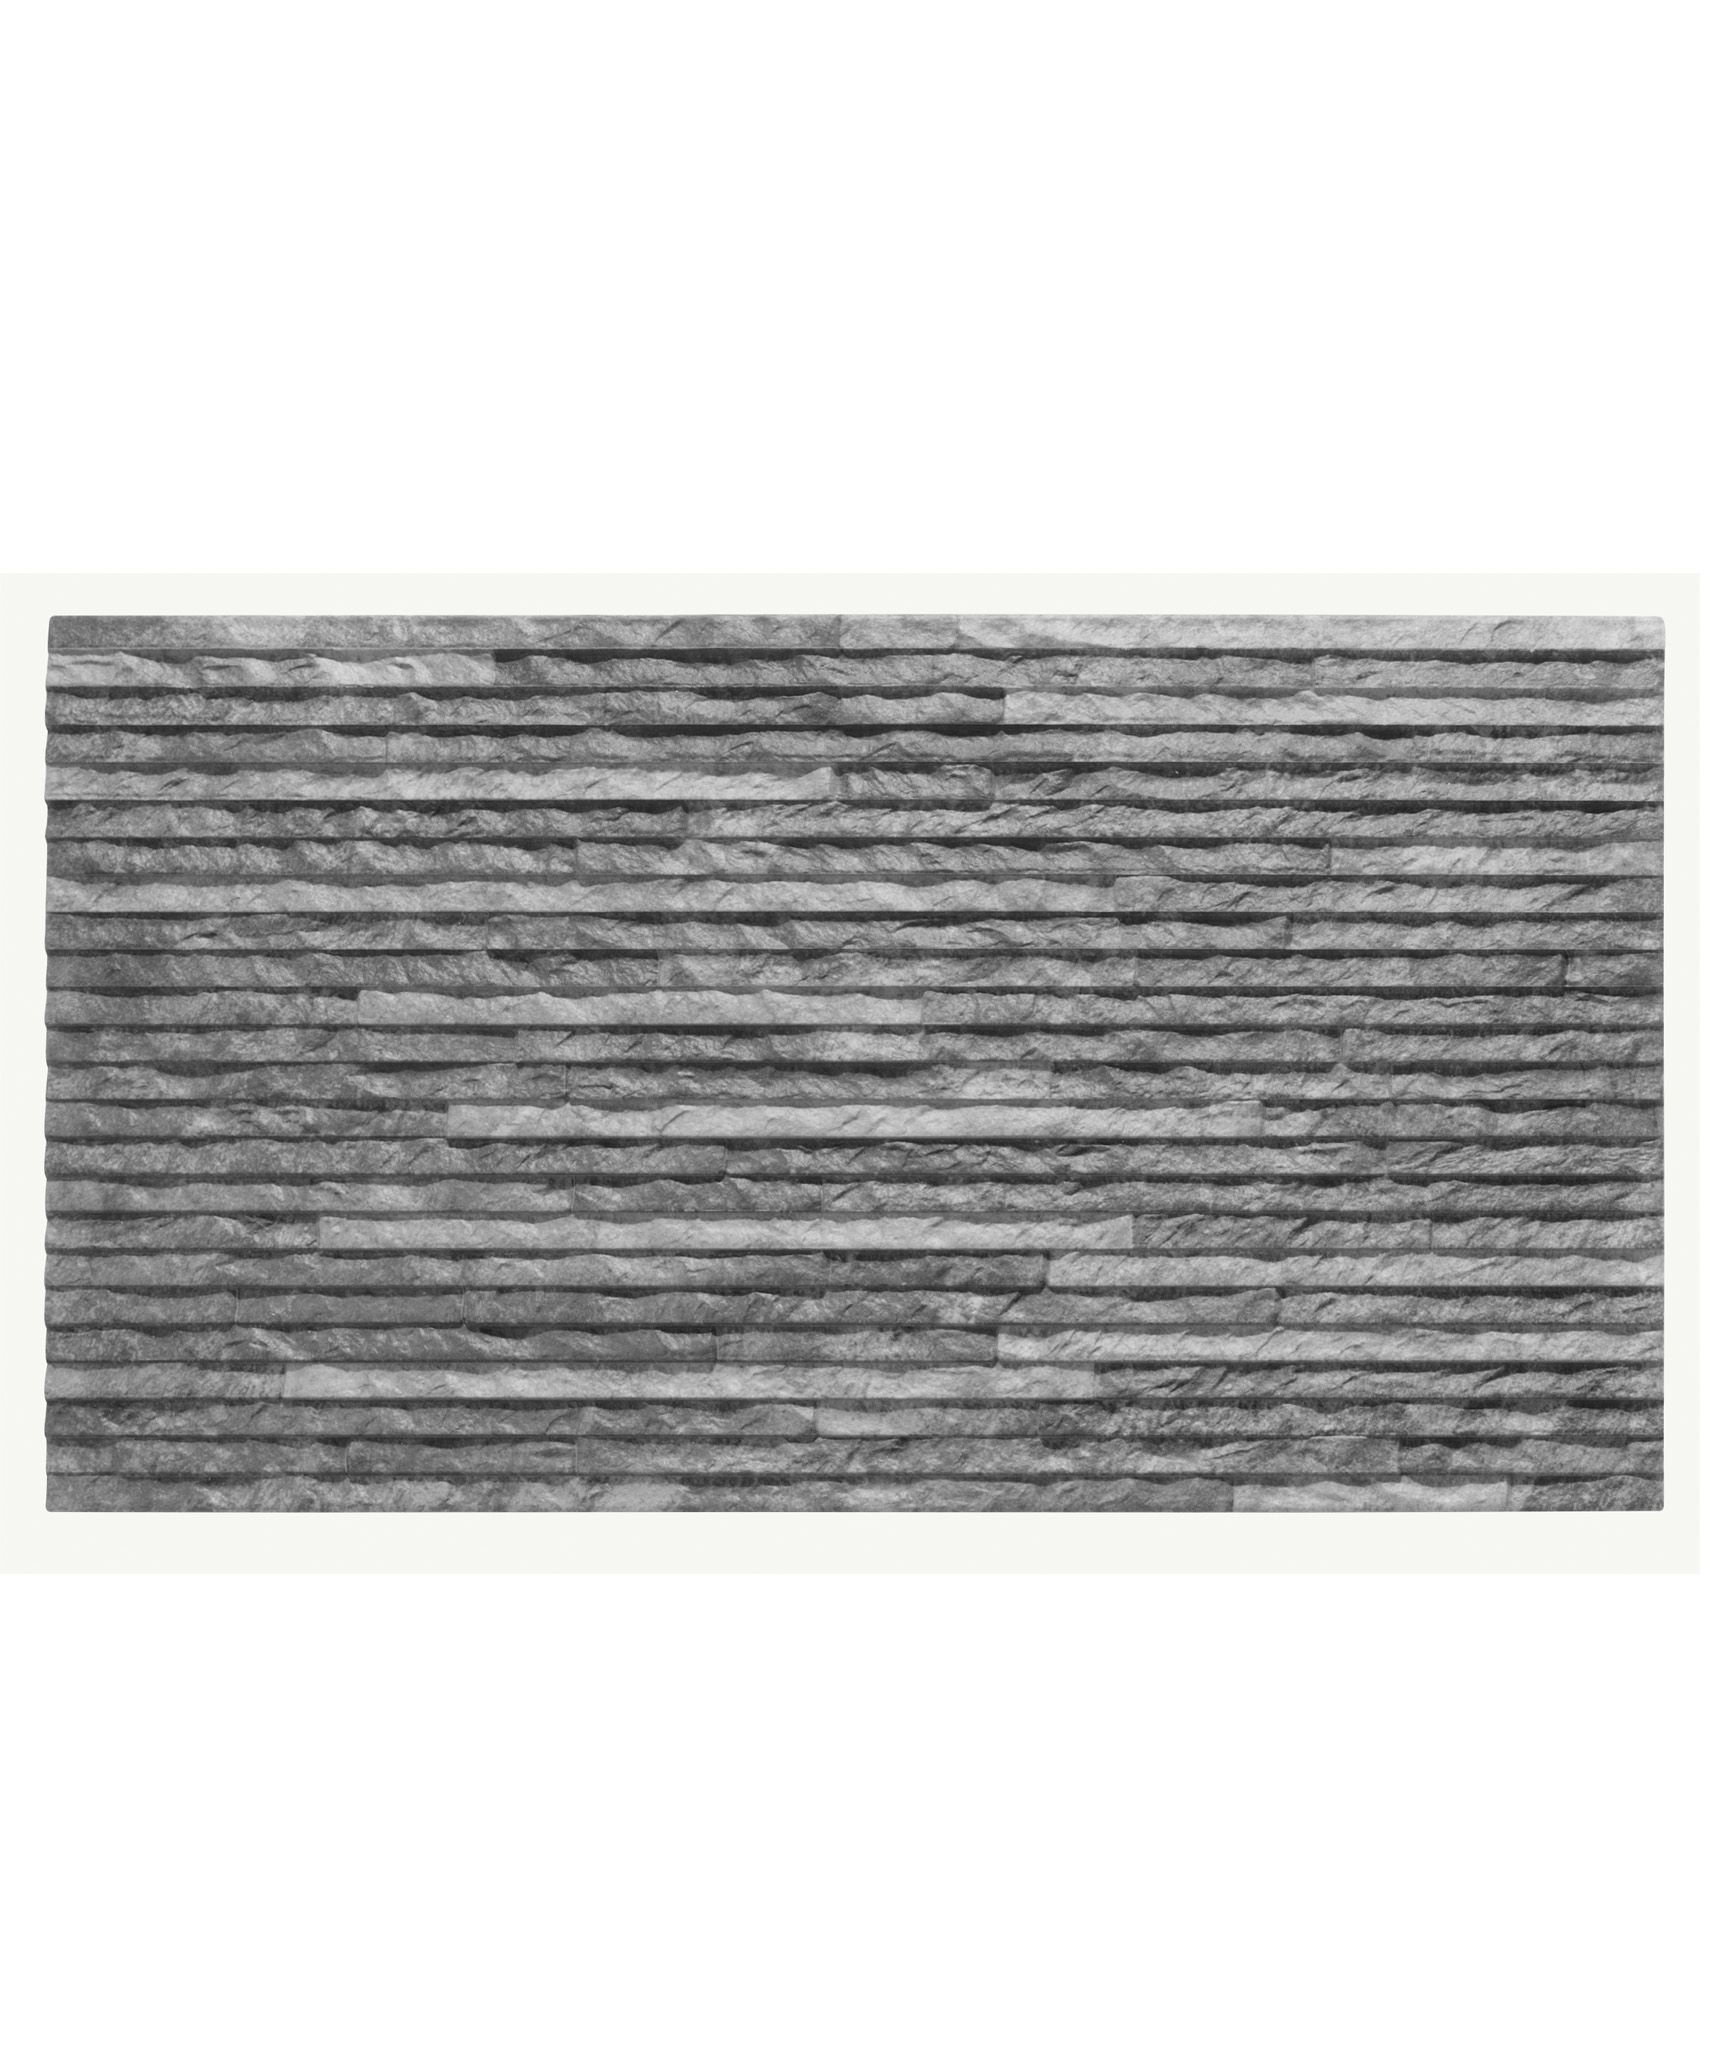 Stratum Grey Topps Tiles Cloakroom Kitchen Wall